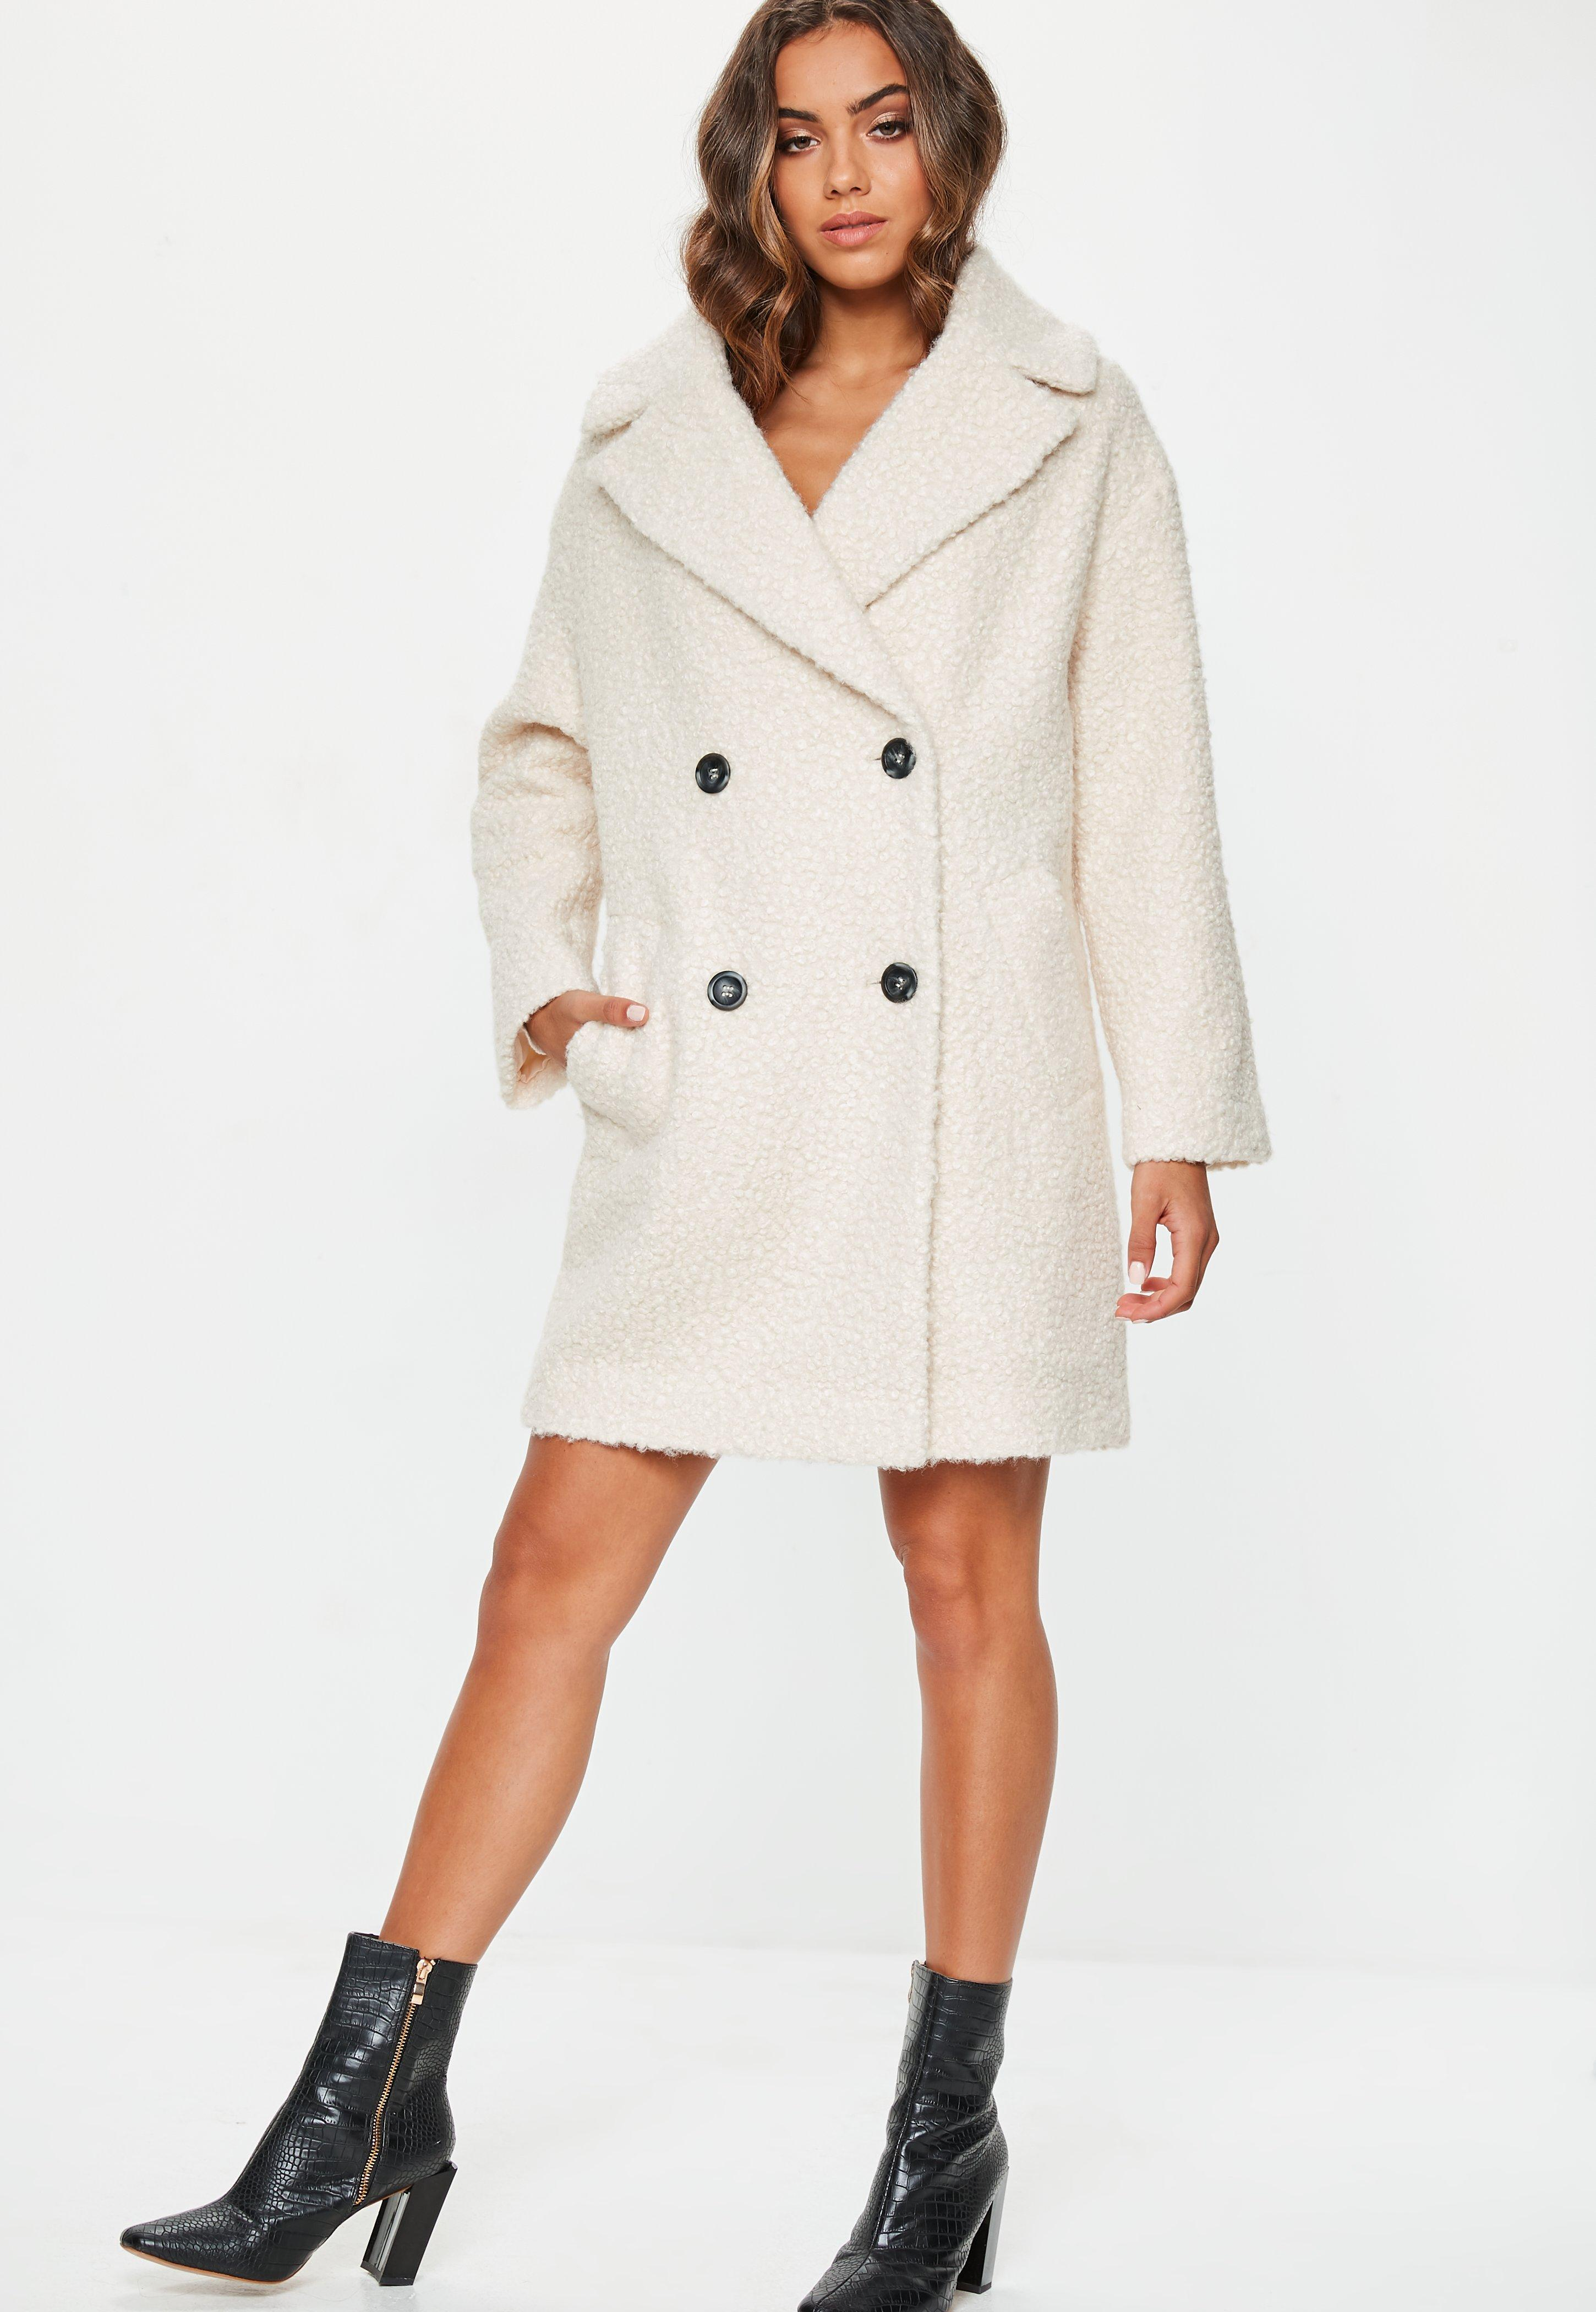 263afcdf3be48 Lyst - Missguided Cream Oversized Boucle Coat in Natural